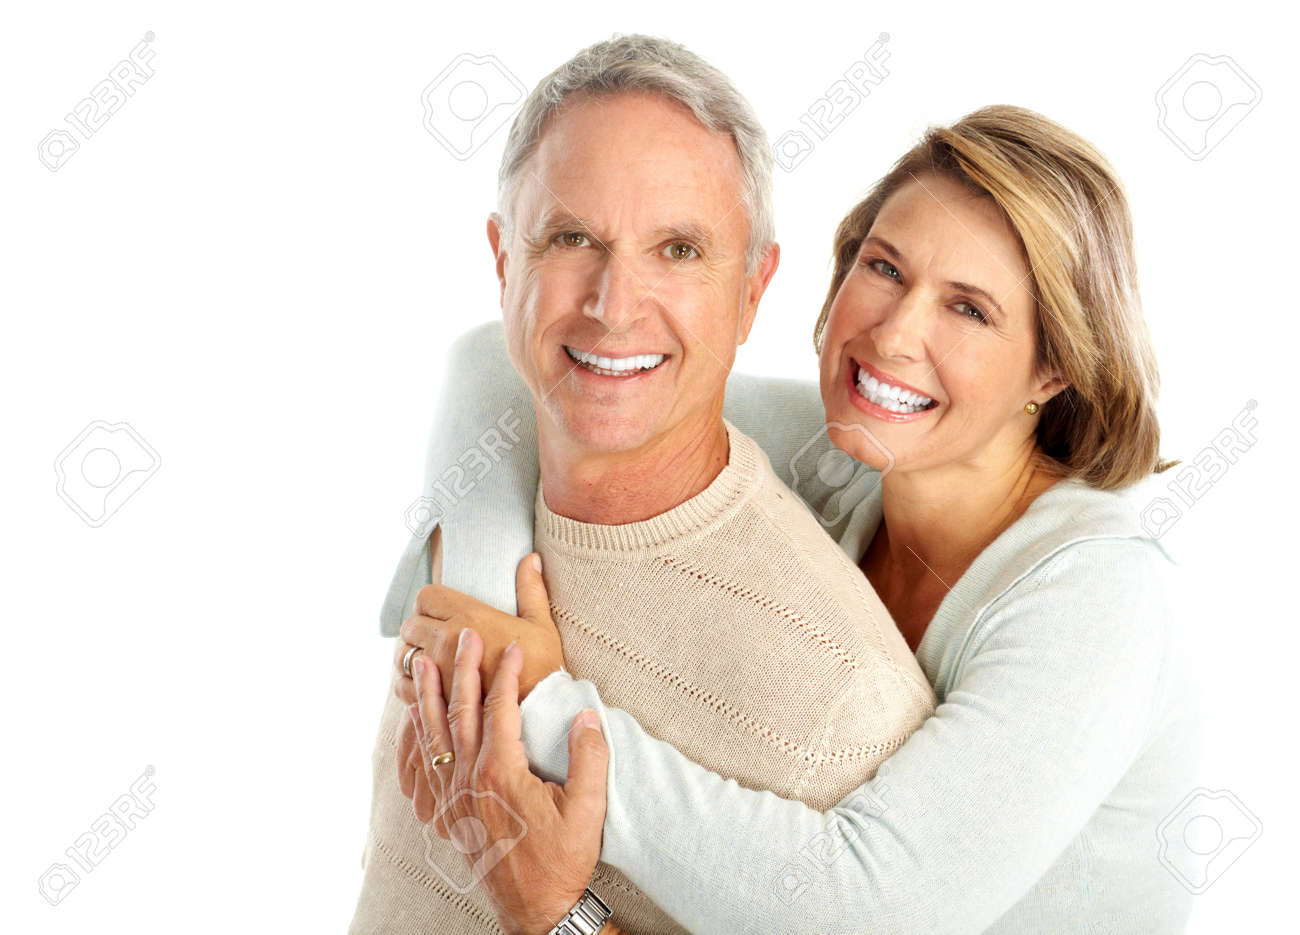 Happy elderly couple in love. Isolated over white background Stock Photo - 5770920